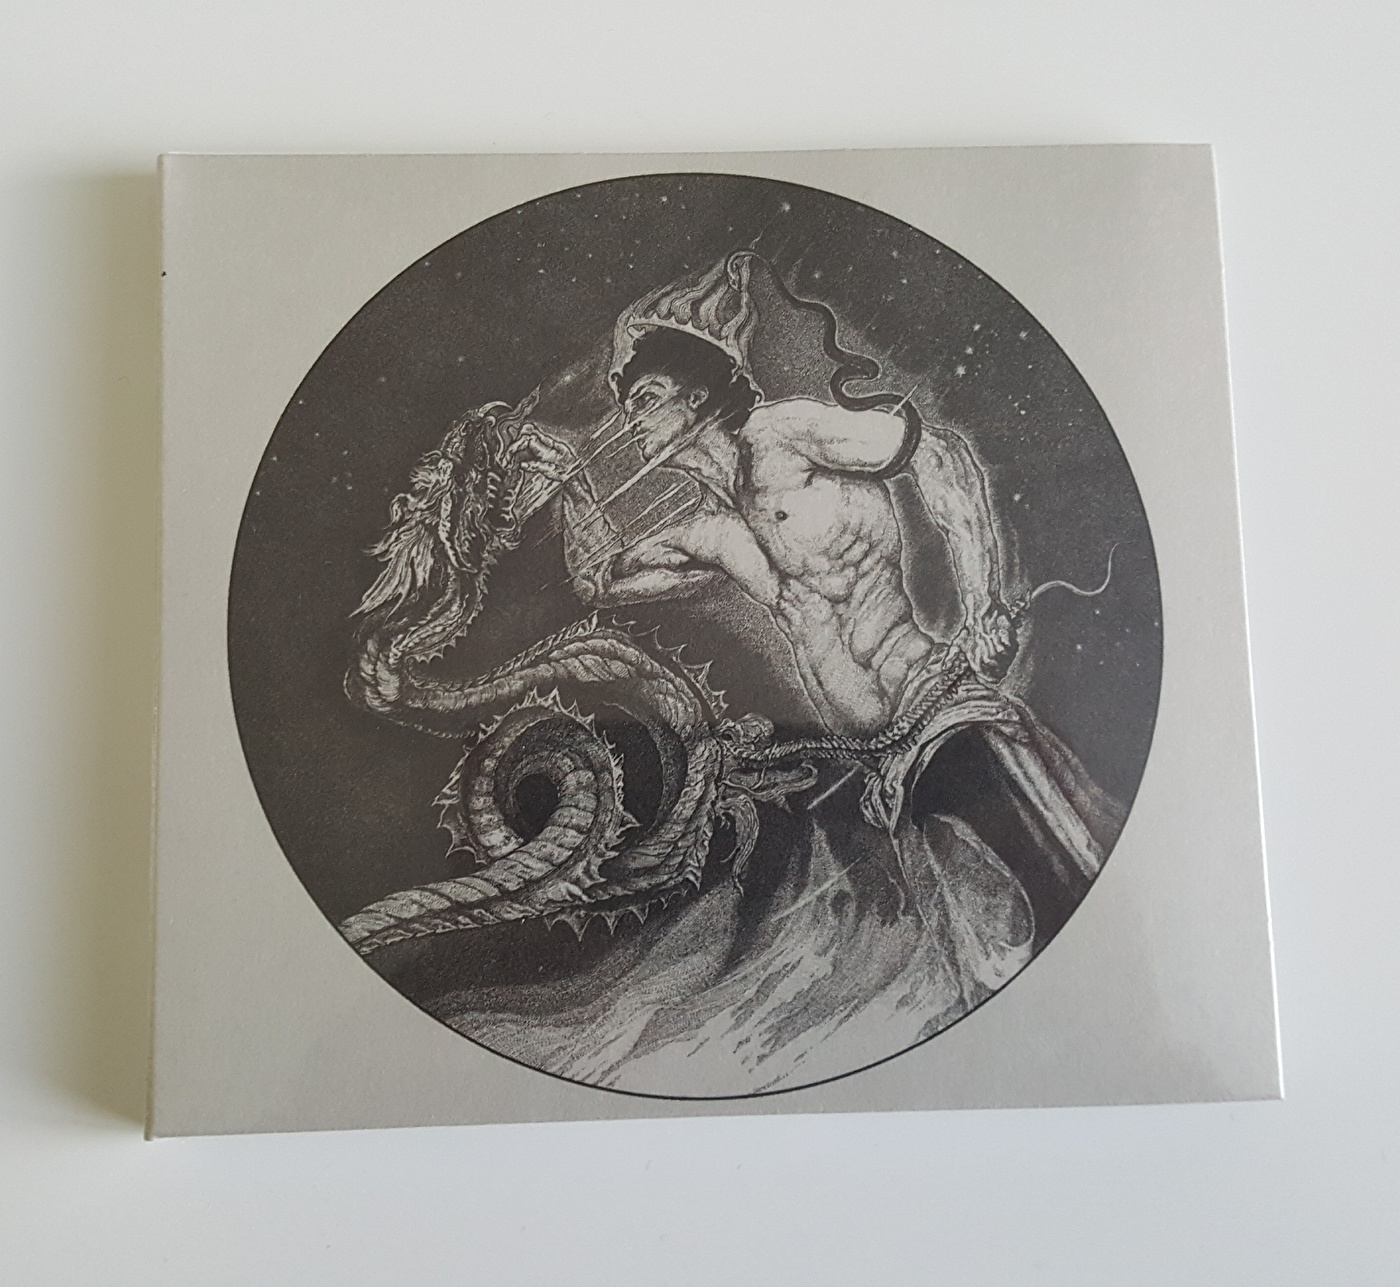 Digipak CD